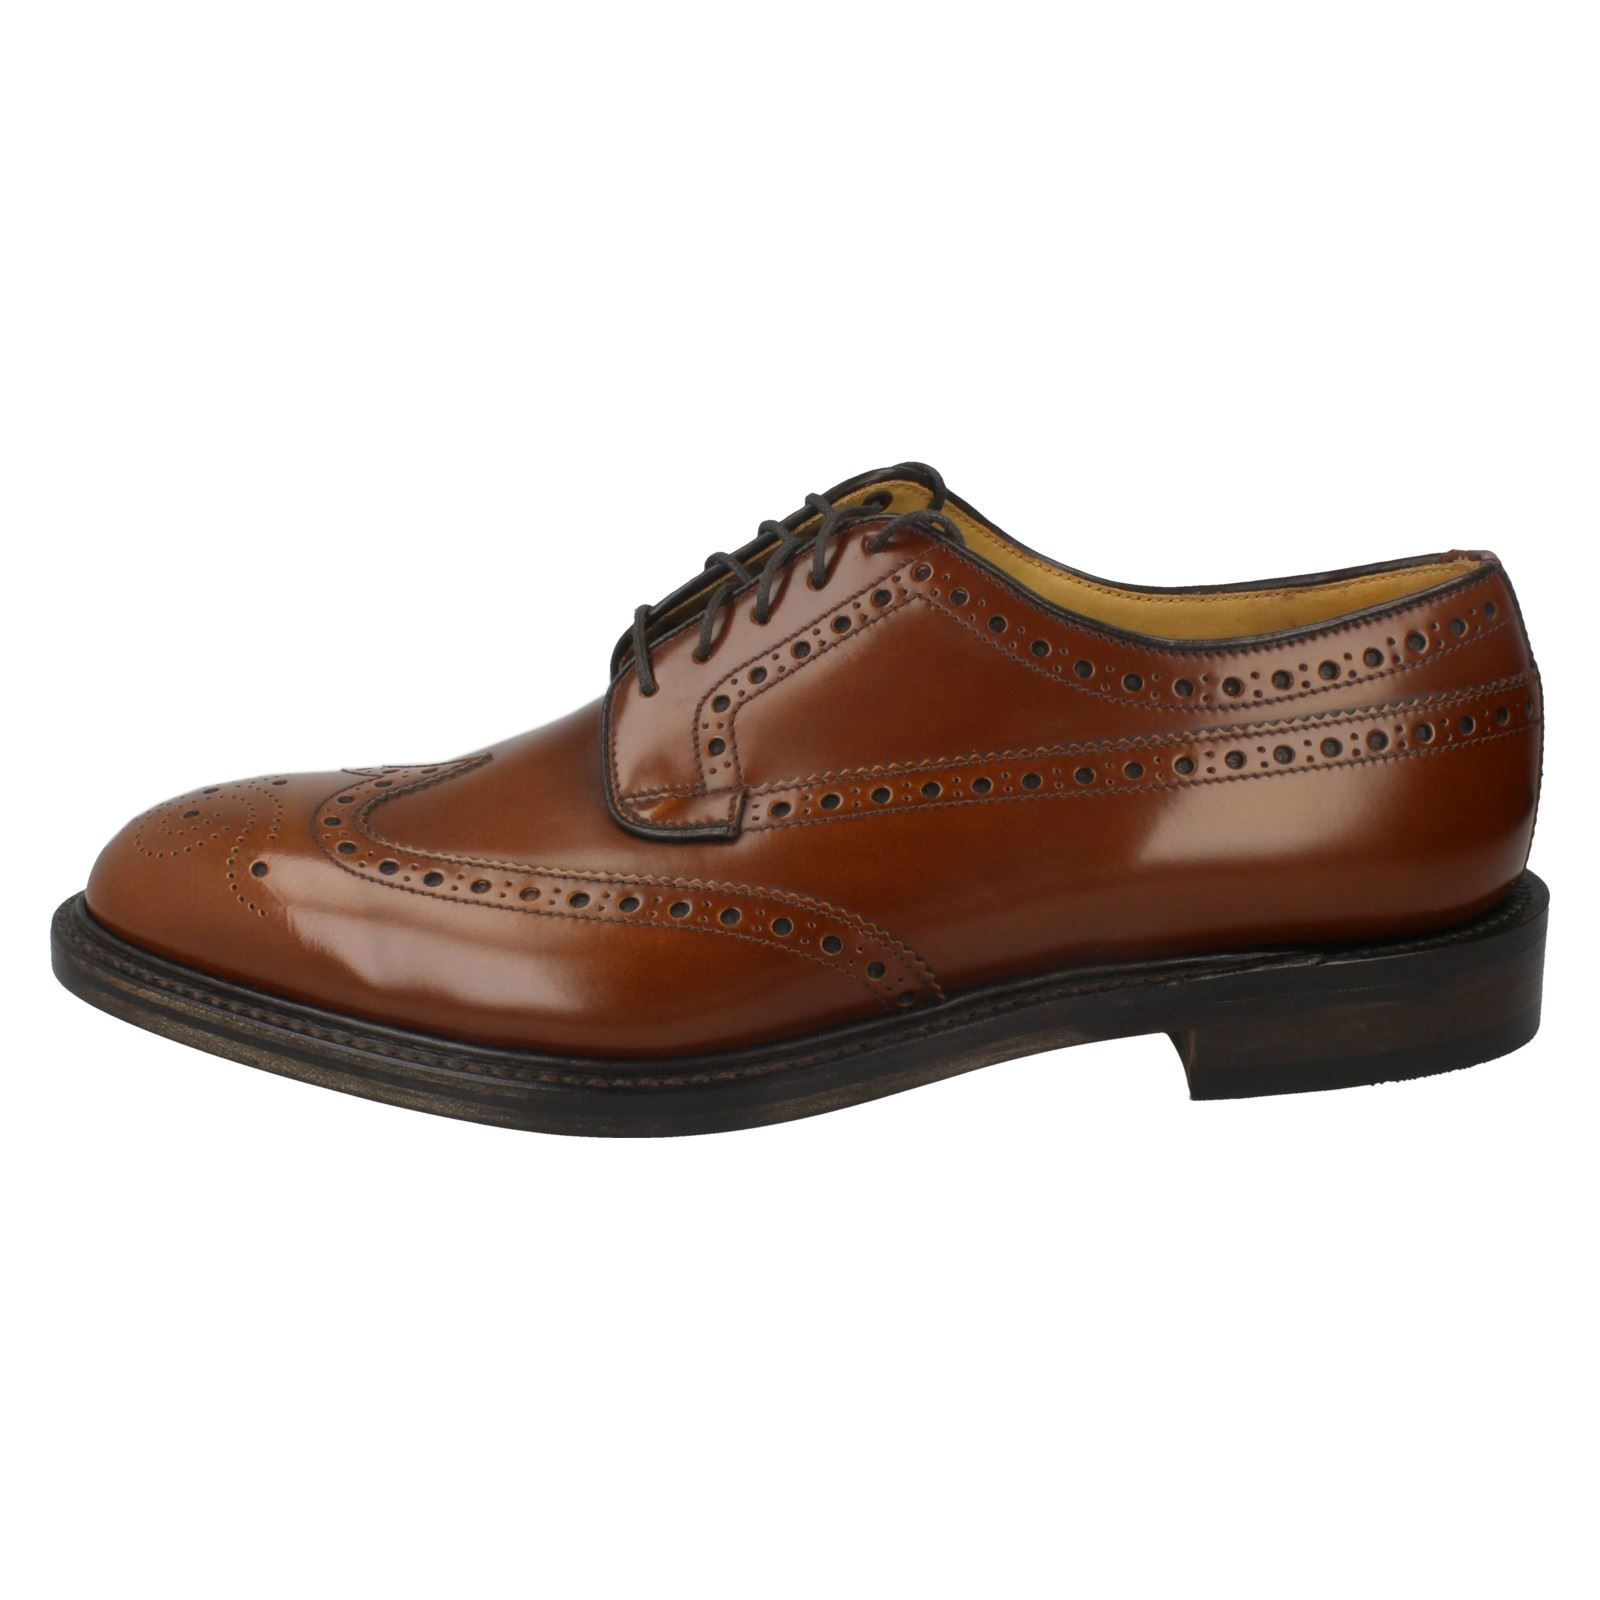 Schuhes Uomo Loake Formal Brogue Schuhes  Braemar d0d9f9